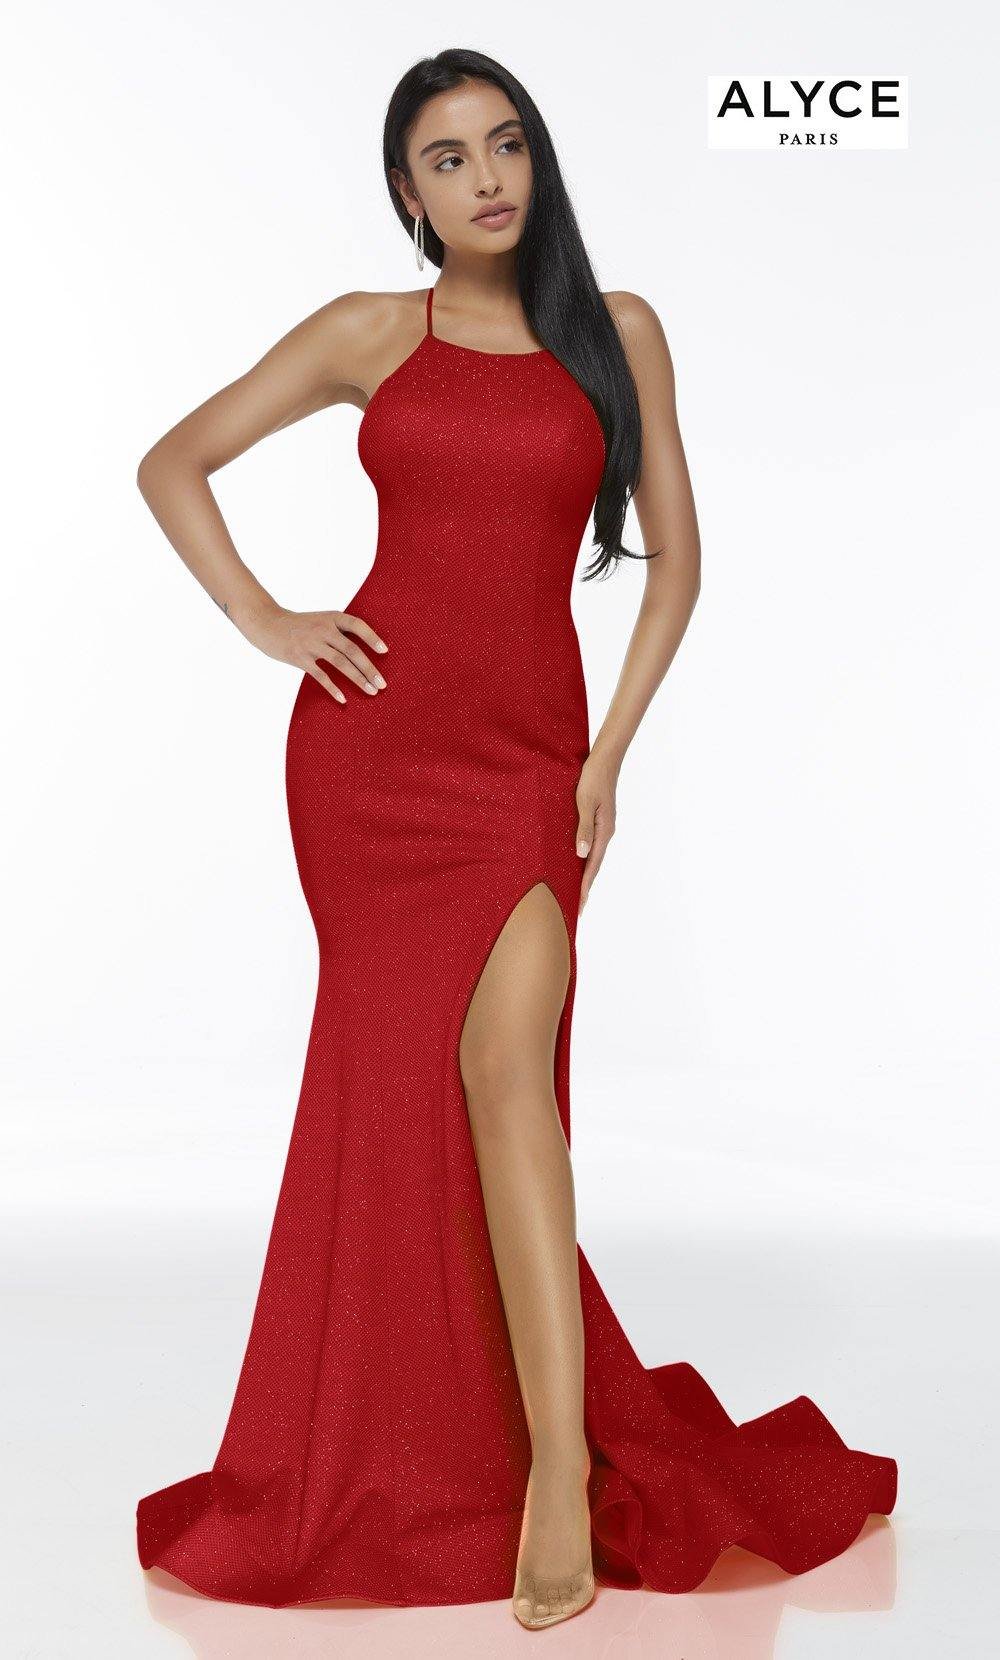 Red mermaid gown with a halter neckline and a front slit